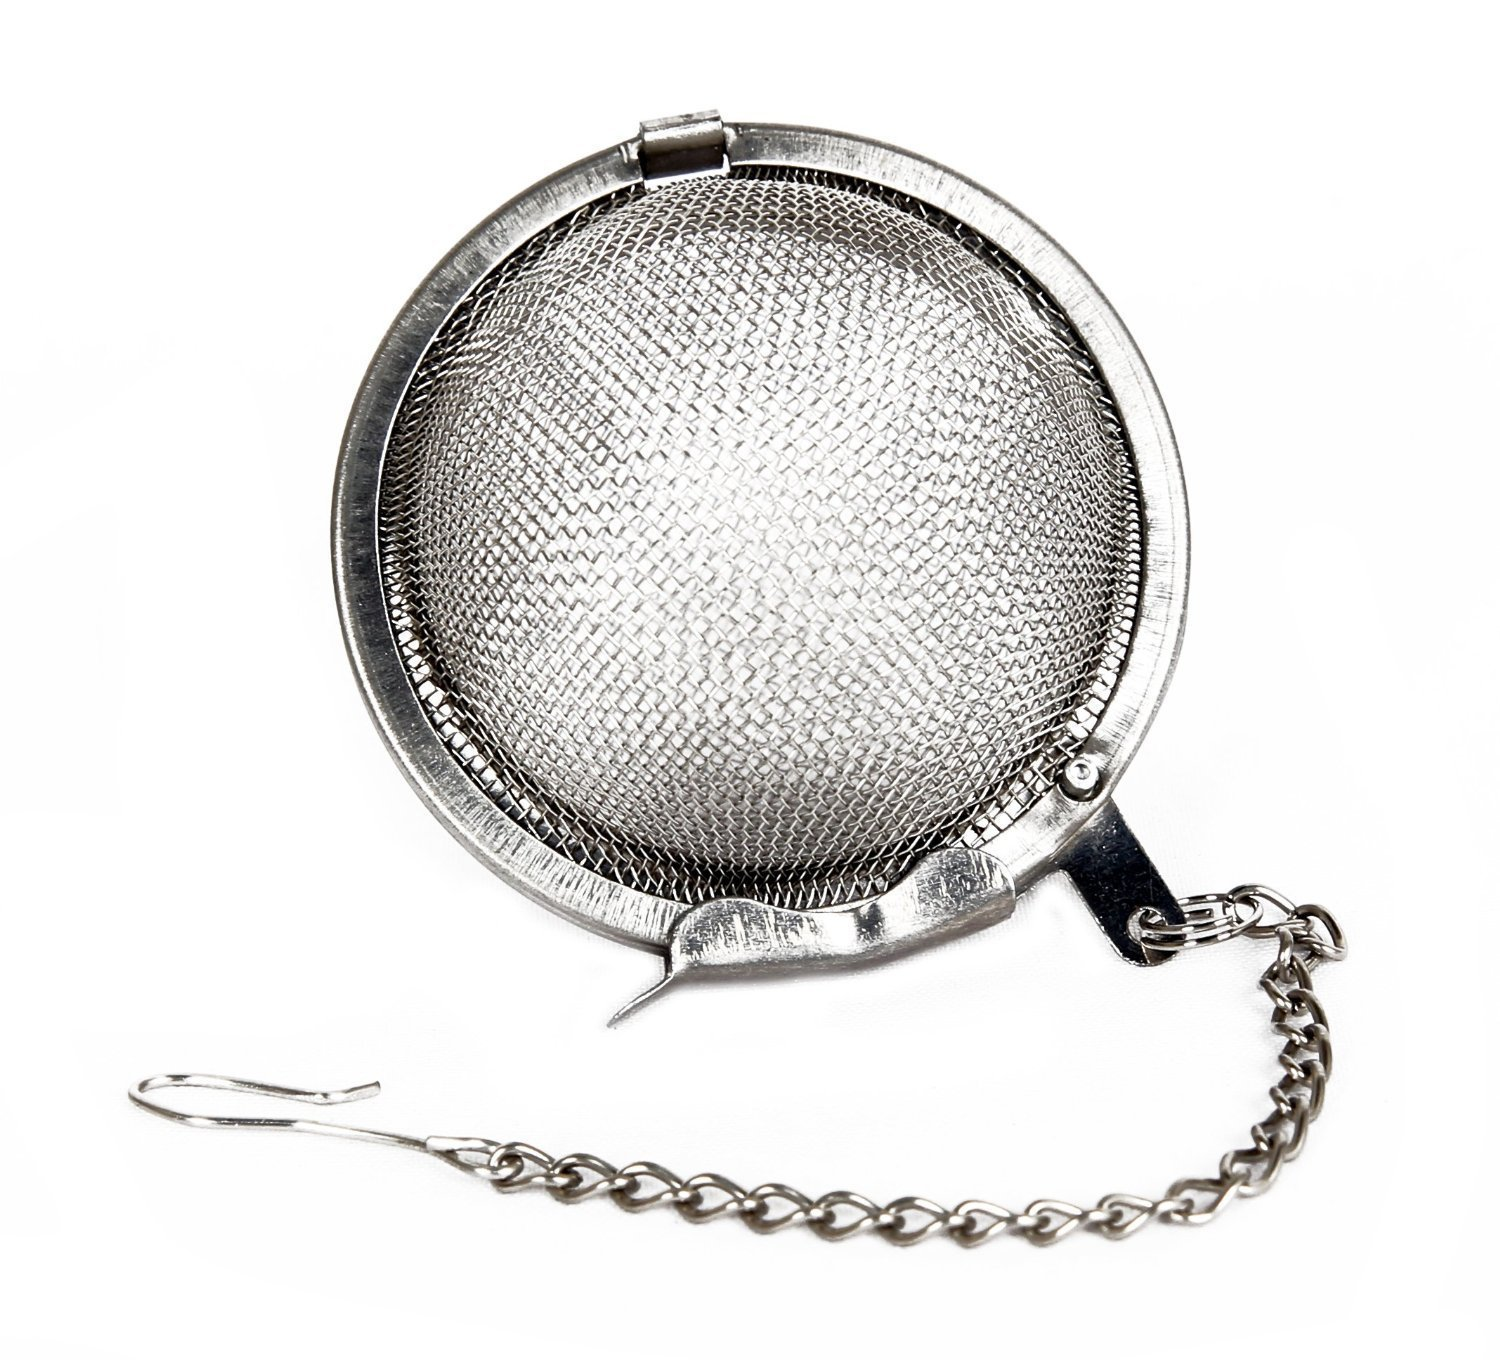 KINGSTONS Stainless Steel Tea strainers tea filter compartment for Tea Infuser Ball